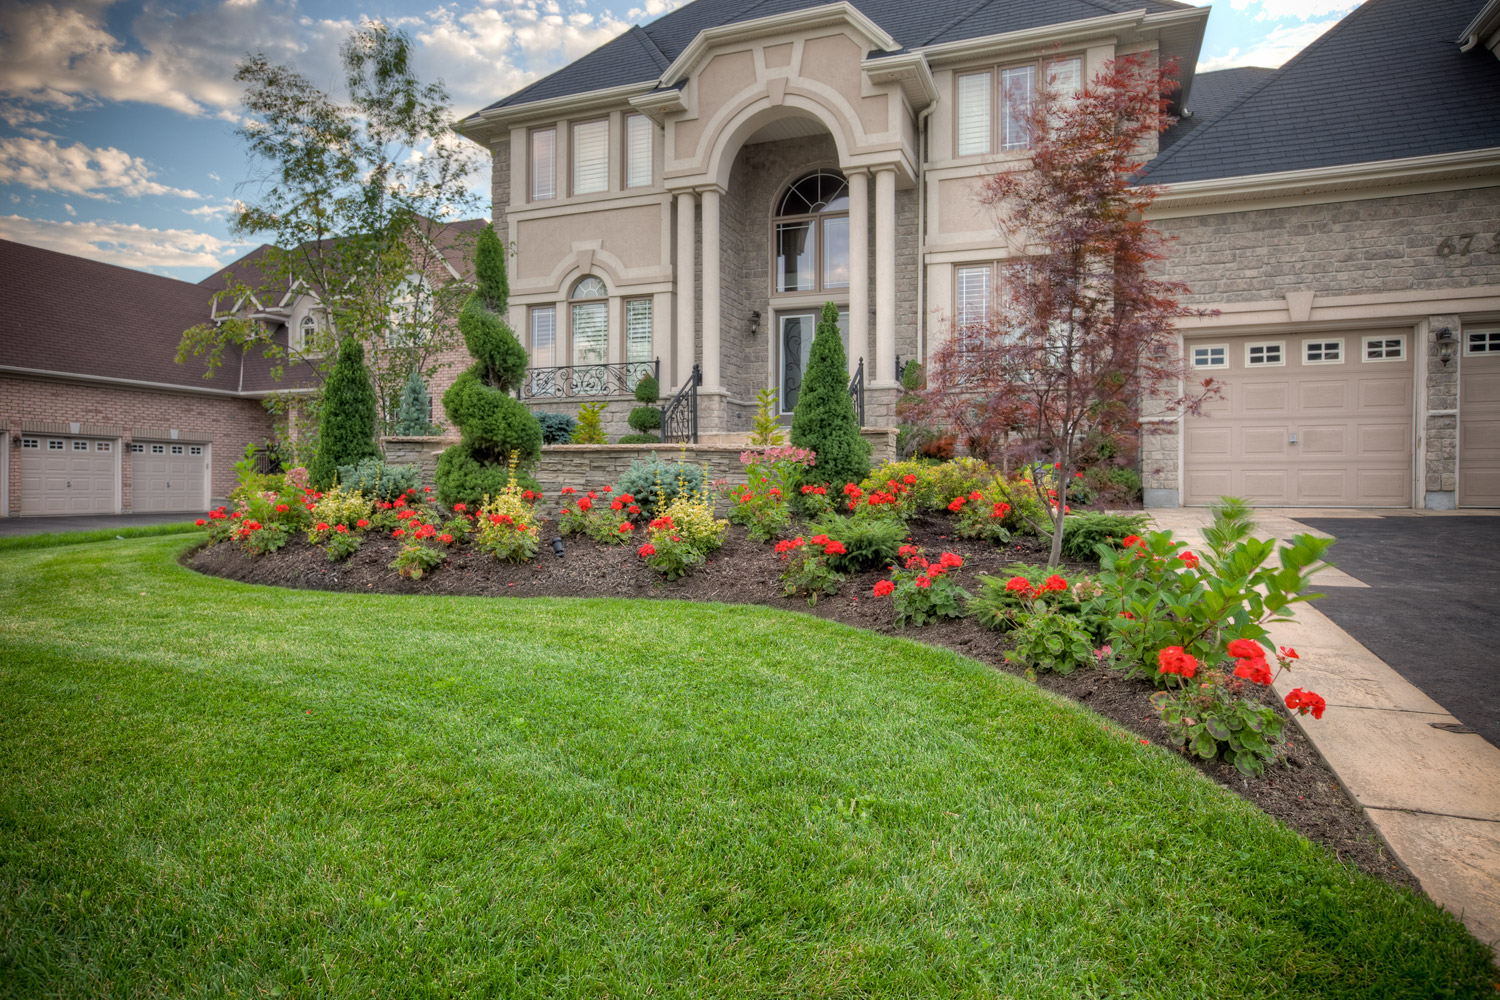 Some ideas of front yard landscaping for a small front for In house garden ideas